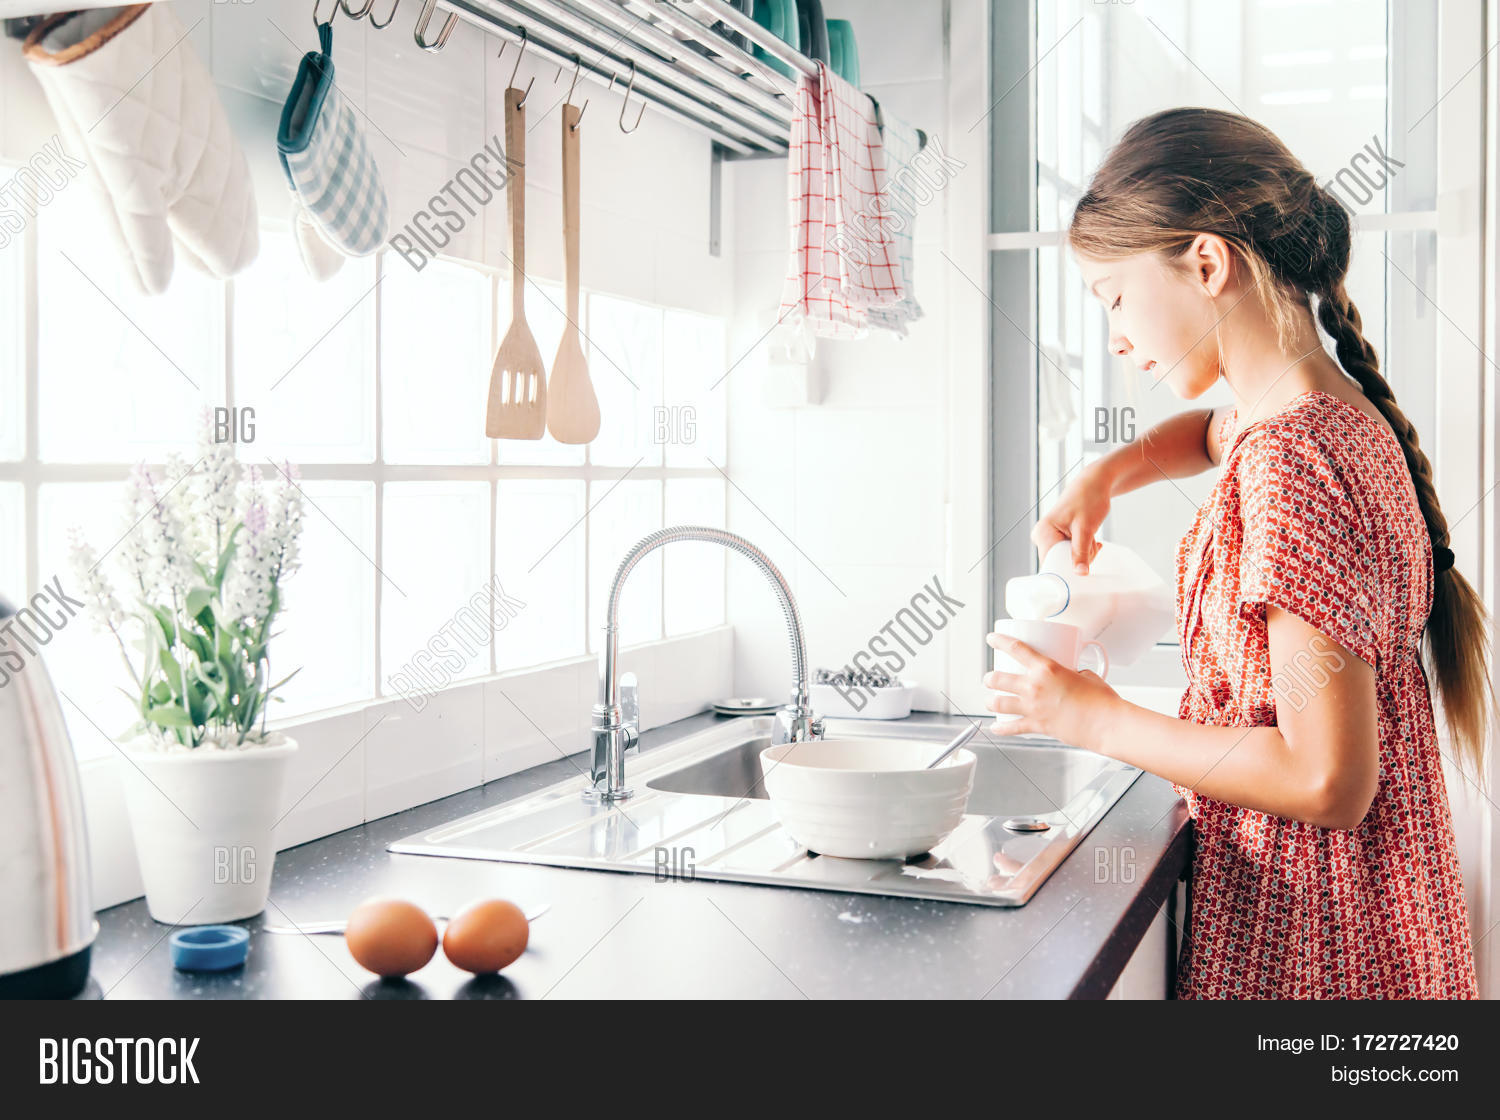 10 Years Old Kid Girl Cooking Image & Photo | Bigstock